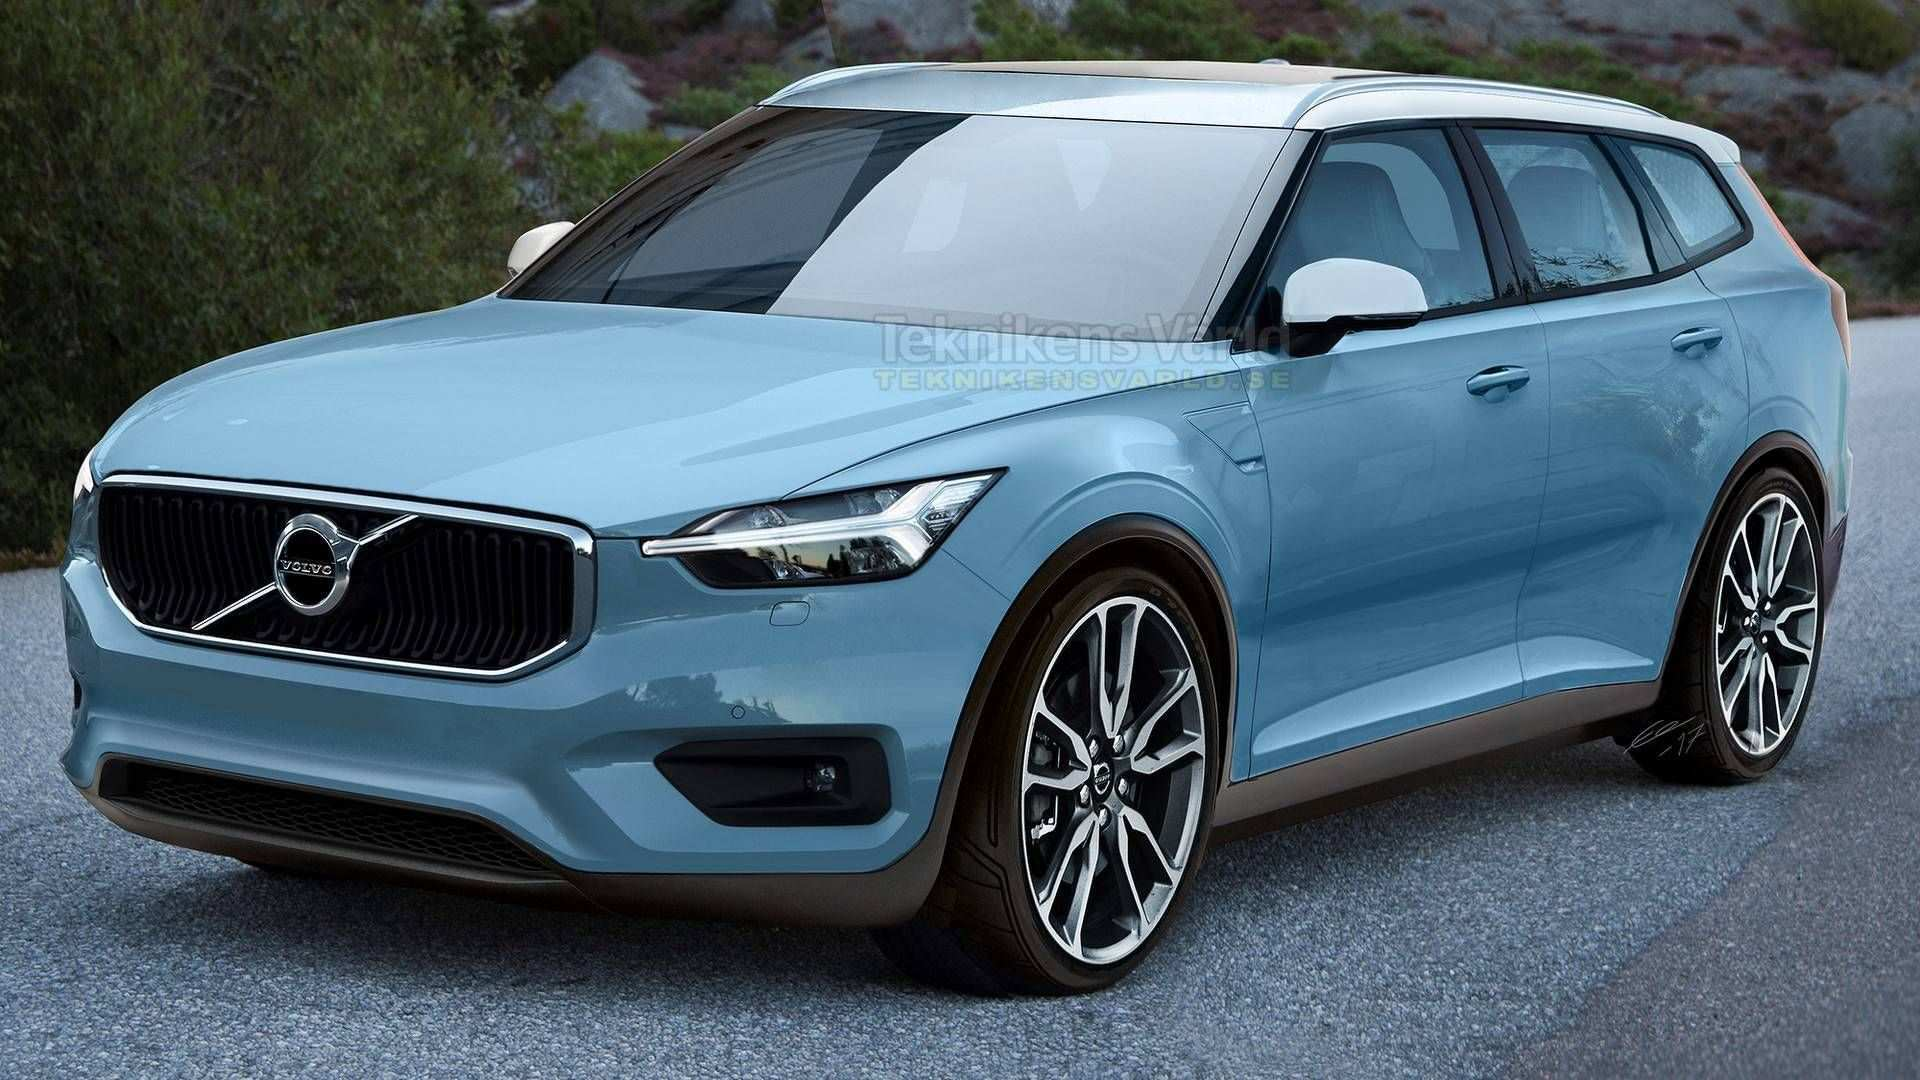 18 Great Volvo Xc40 2020 New Concept Picture by Volvo Xc40 2020 New Concept